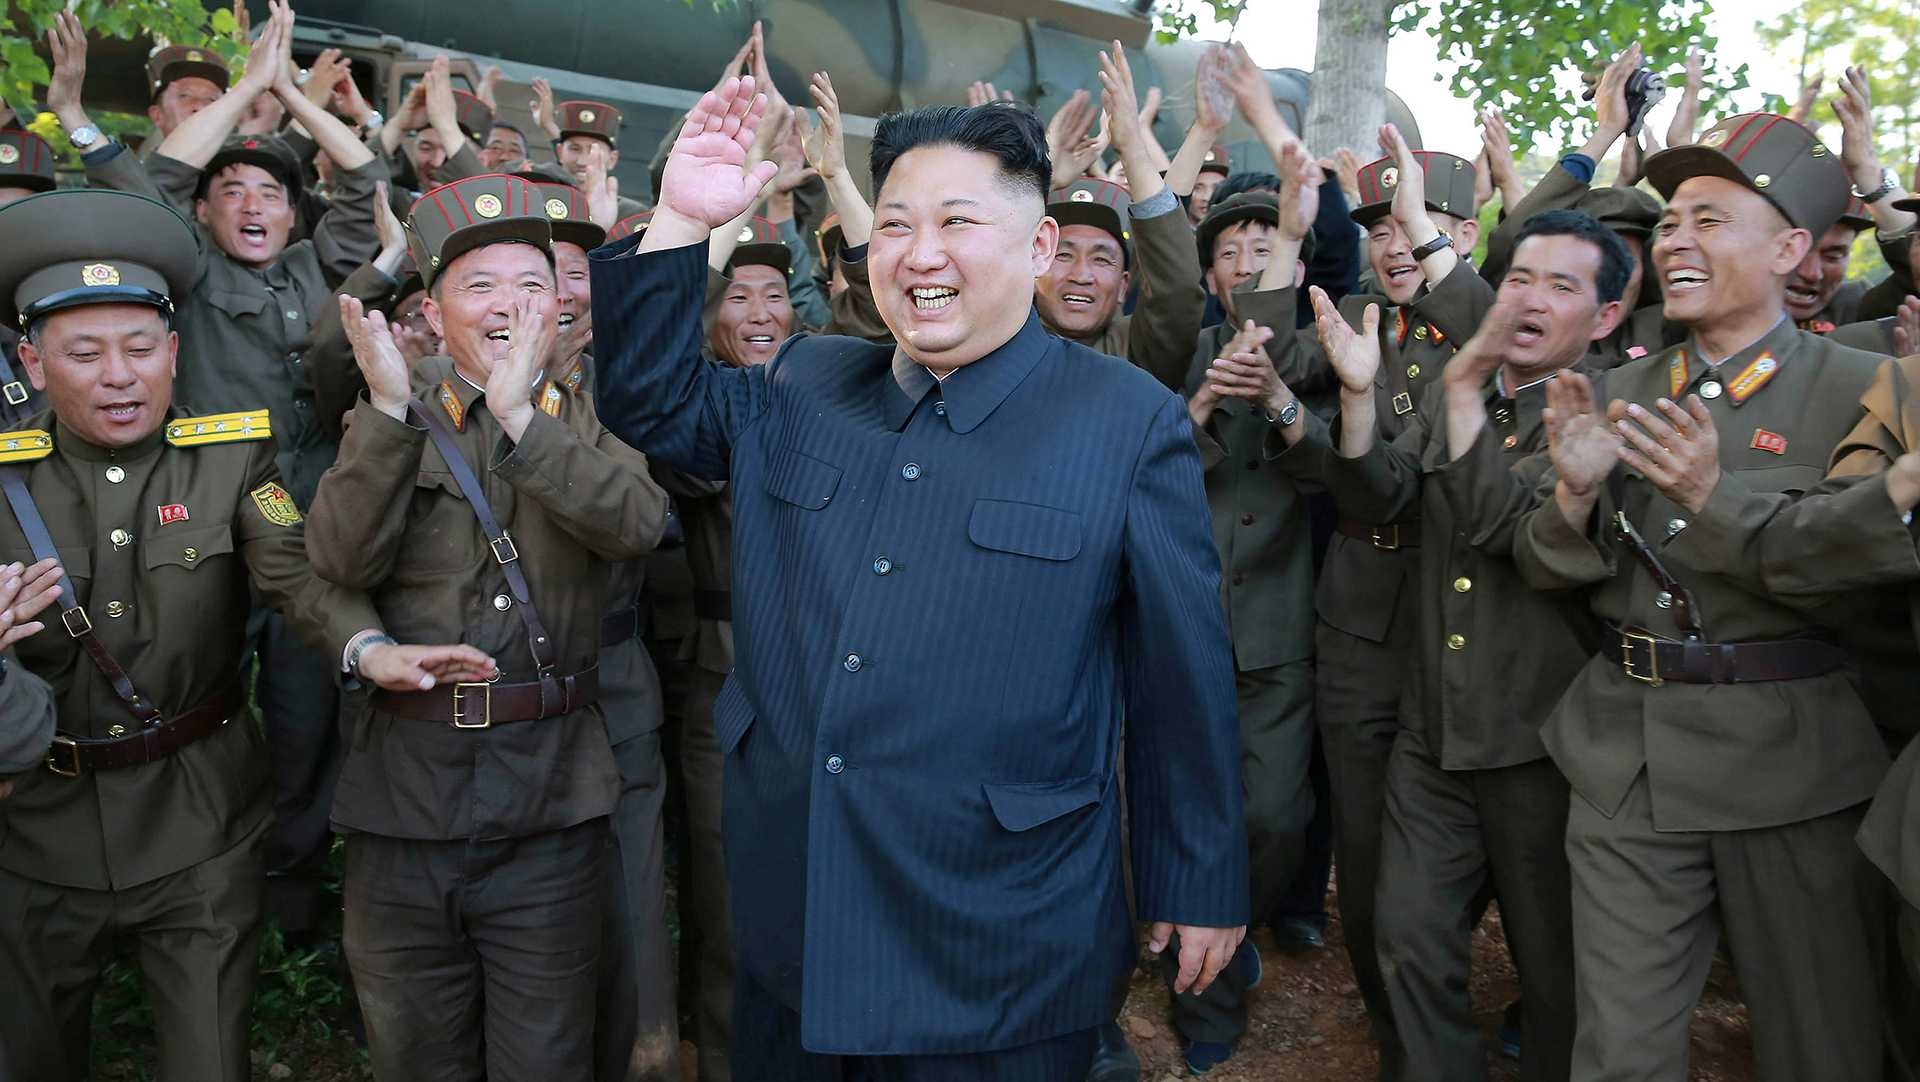 Undated photo from North Korean News Agency shows North Korean leader Kim Jong-un visiting a Korean People & Army unit, in an undisclosed location, North Korea. Photo released August 2017. (Balkis Press/Abaca Press/TNS)